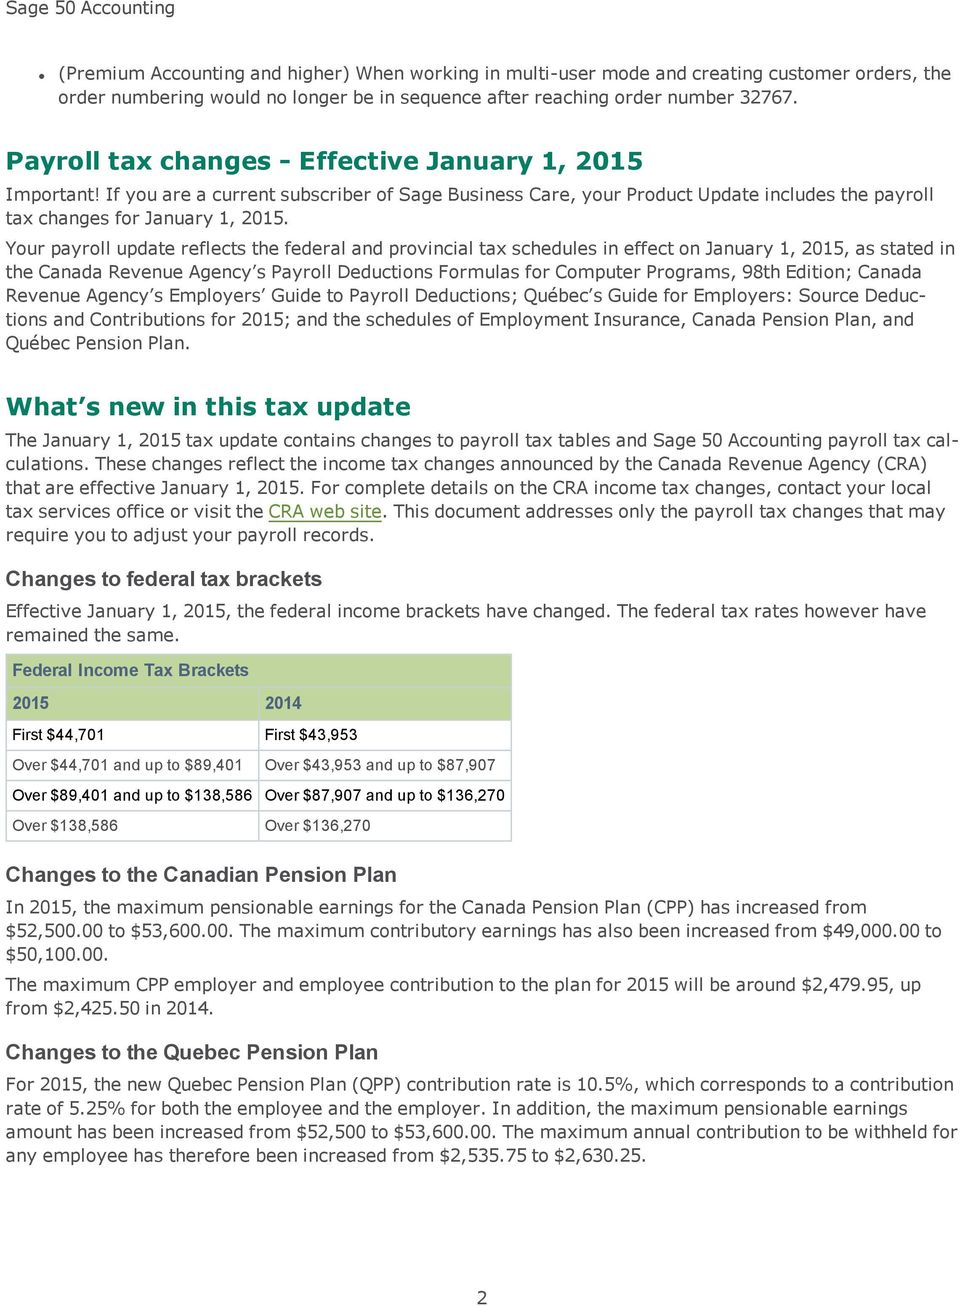 Your payroll update reflects the federal and provincial tax schedules in effect on January 1, 2015, as stated in the Canada Revenue Agency s Payroll Deductions Formulas for Computer Programs, 98th